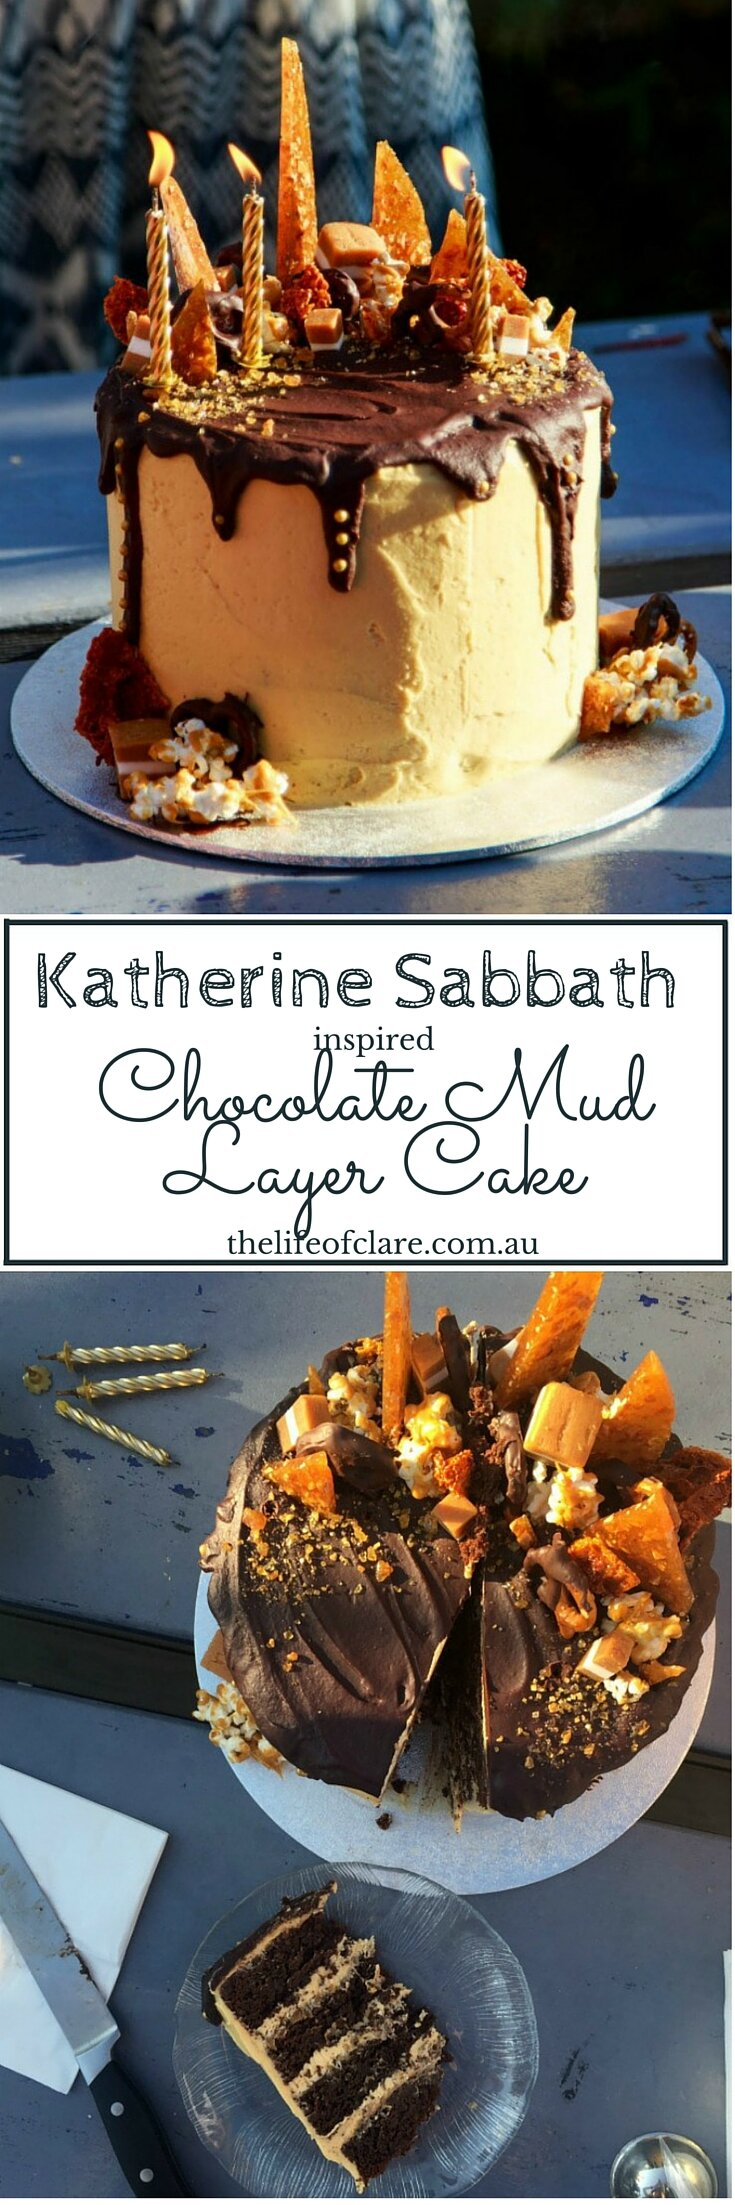 Katherine Sabbath Inspired Chocolate Cake